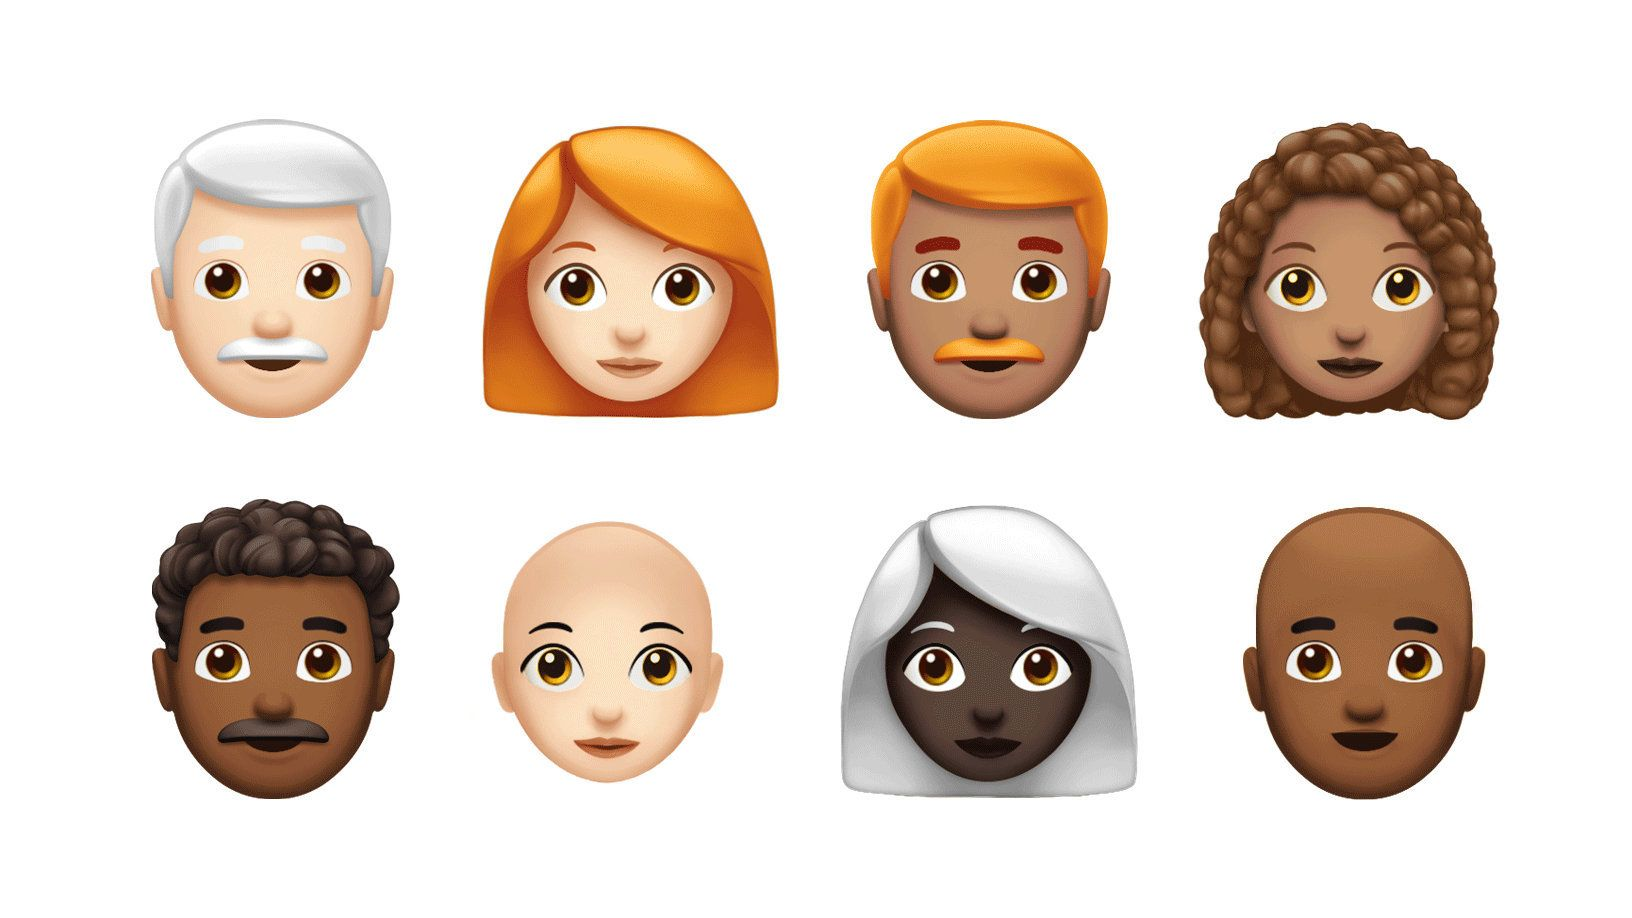 TECH: These Are Some Of The New Emojis Coming To Your